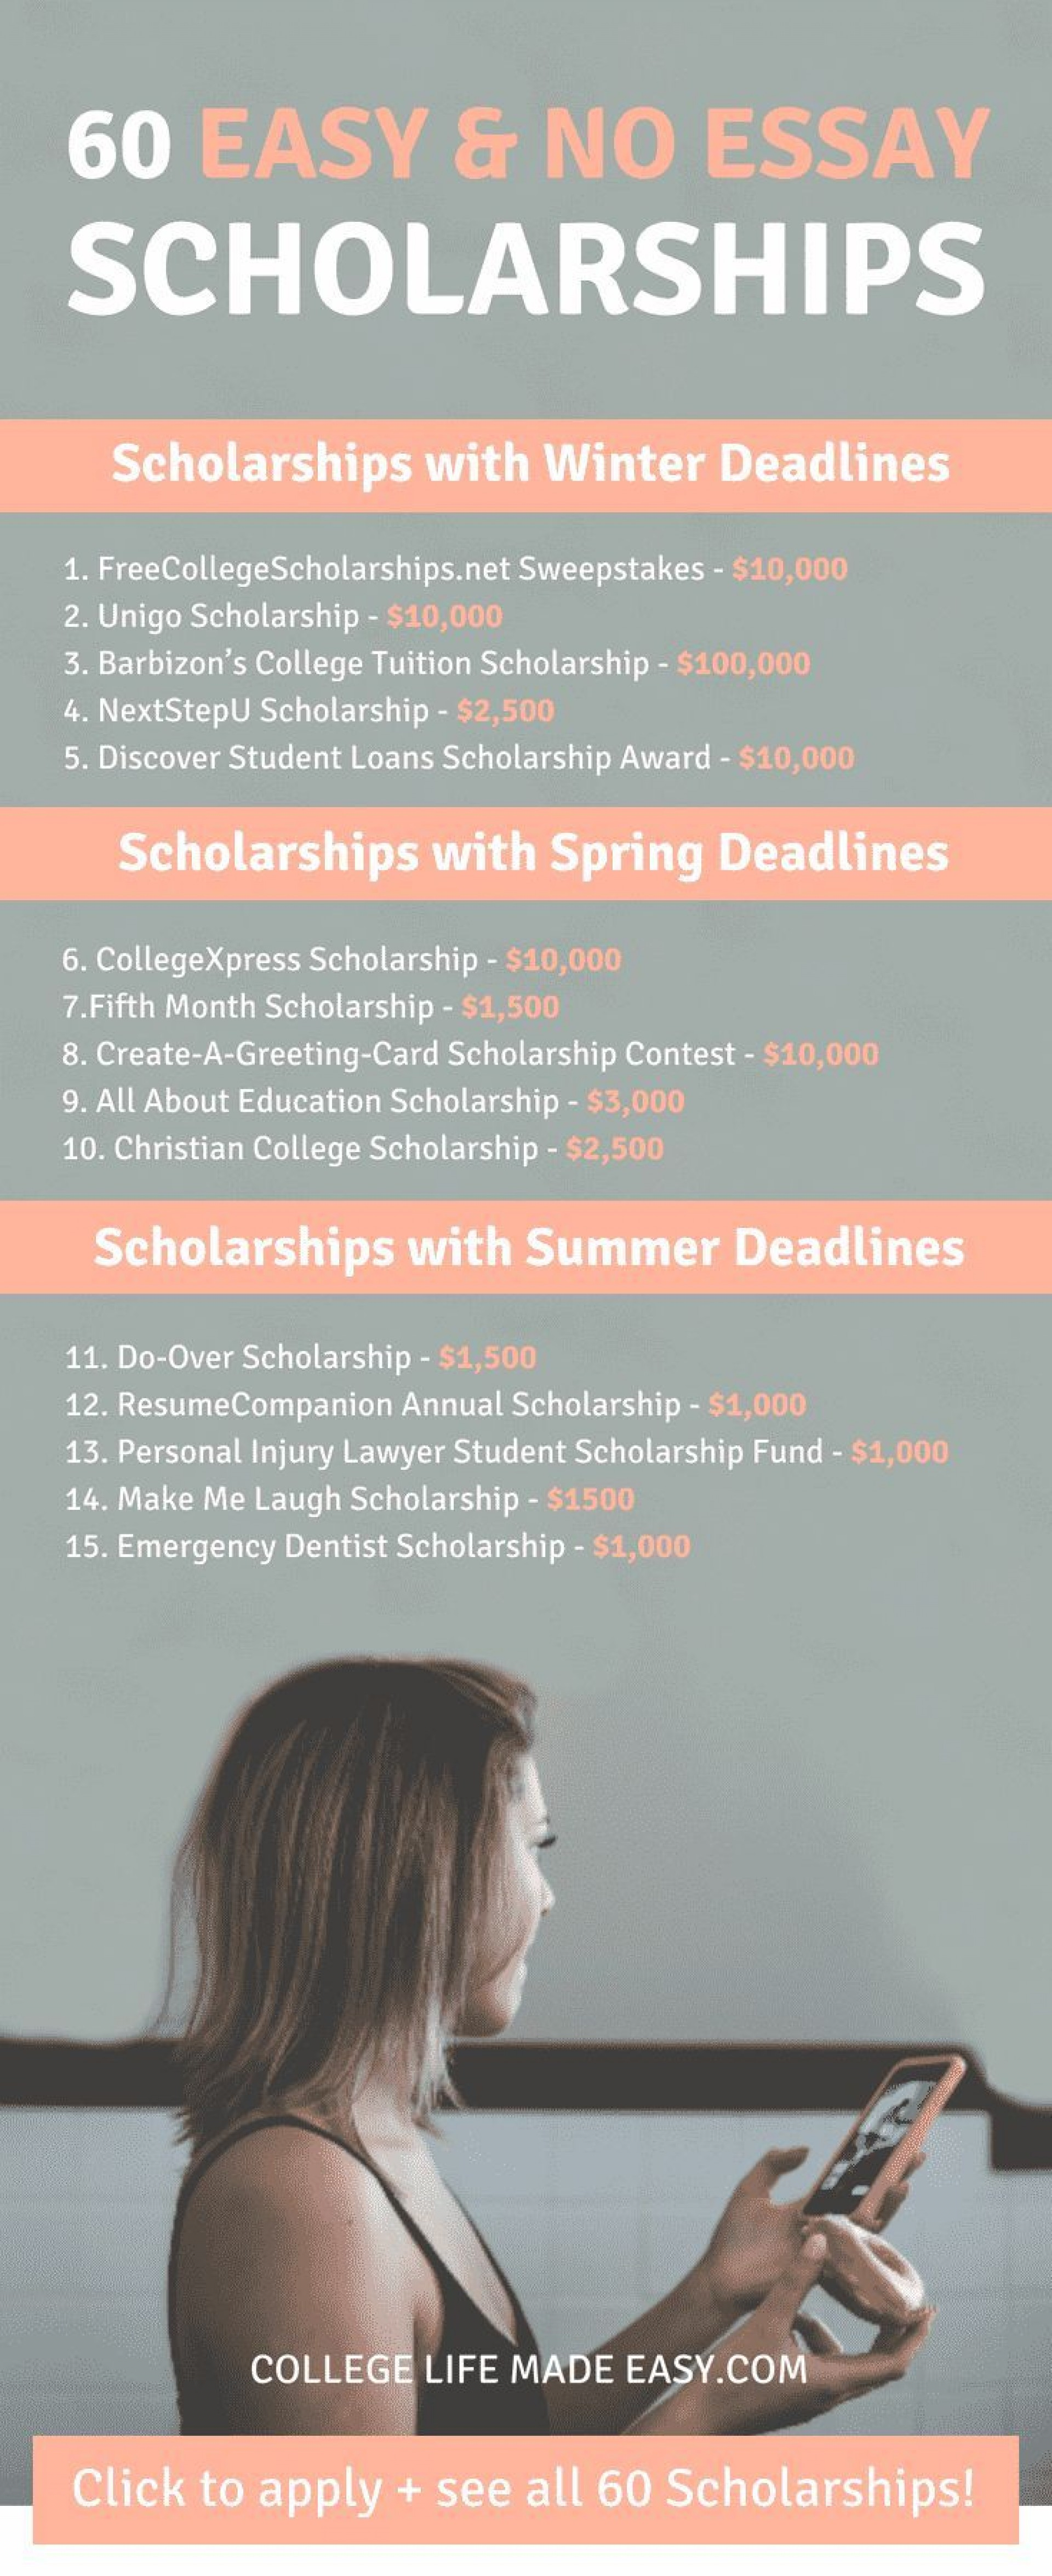 006 No Essay Scholarships For College Students Awful 2019 1920